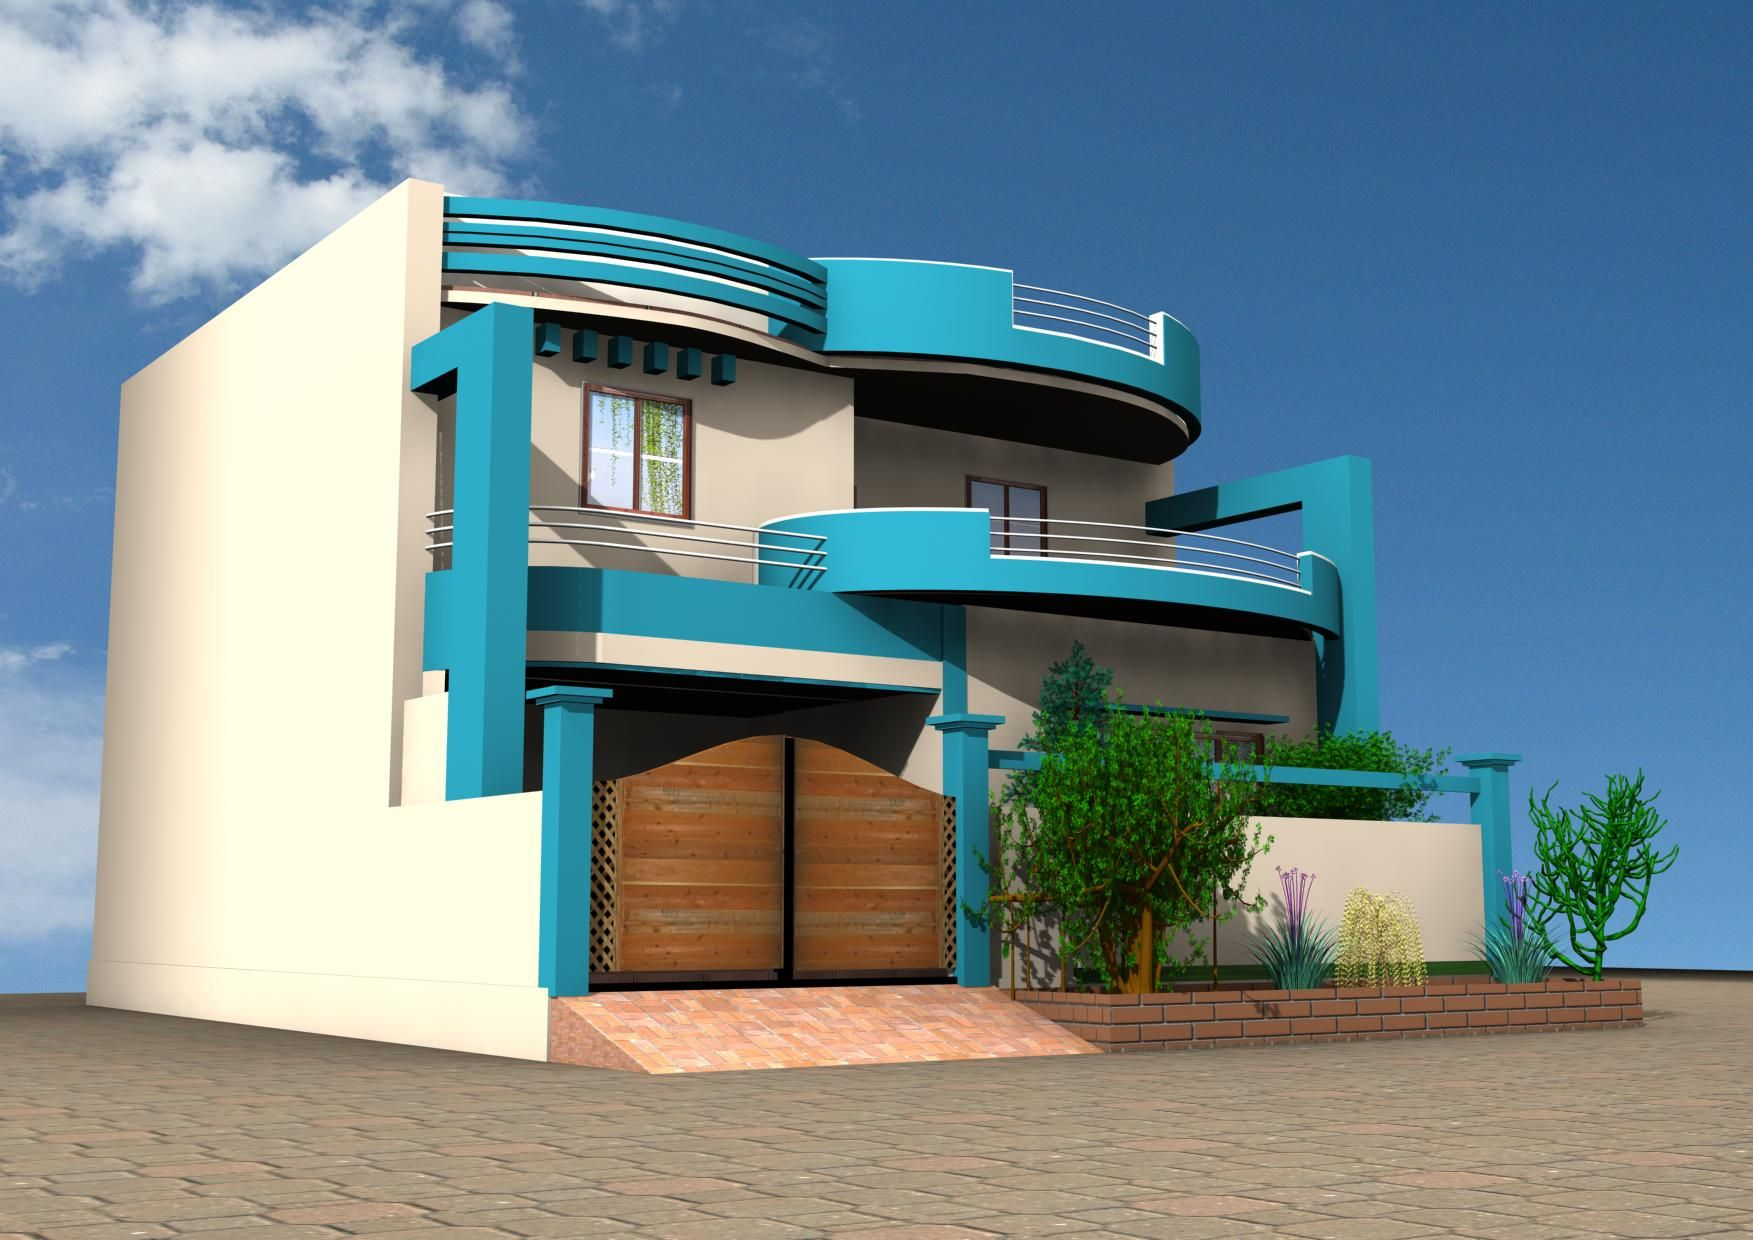 3d home design images hd 1080p for Virtual exterior house design